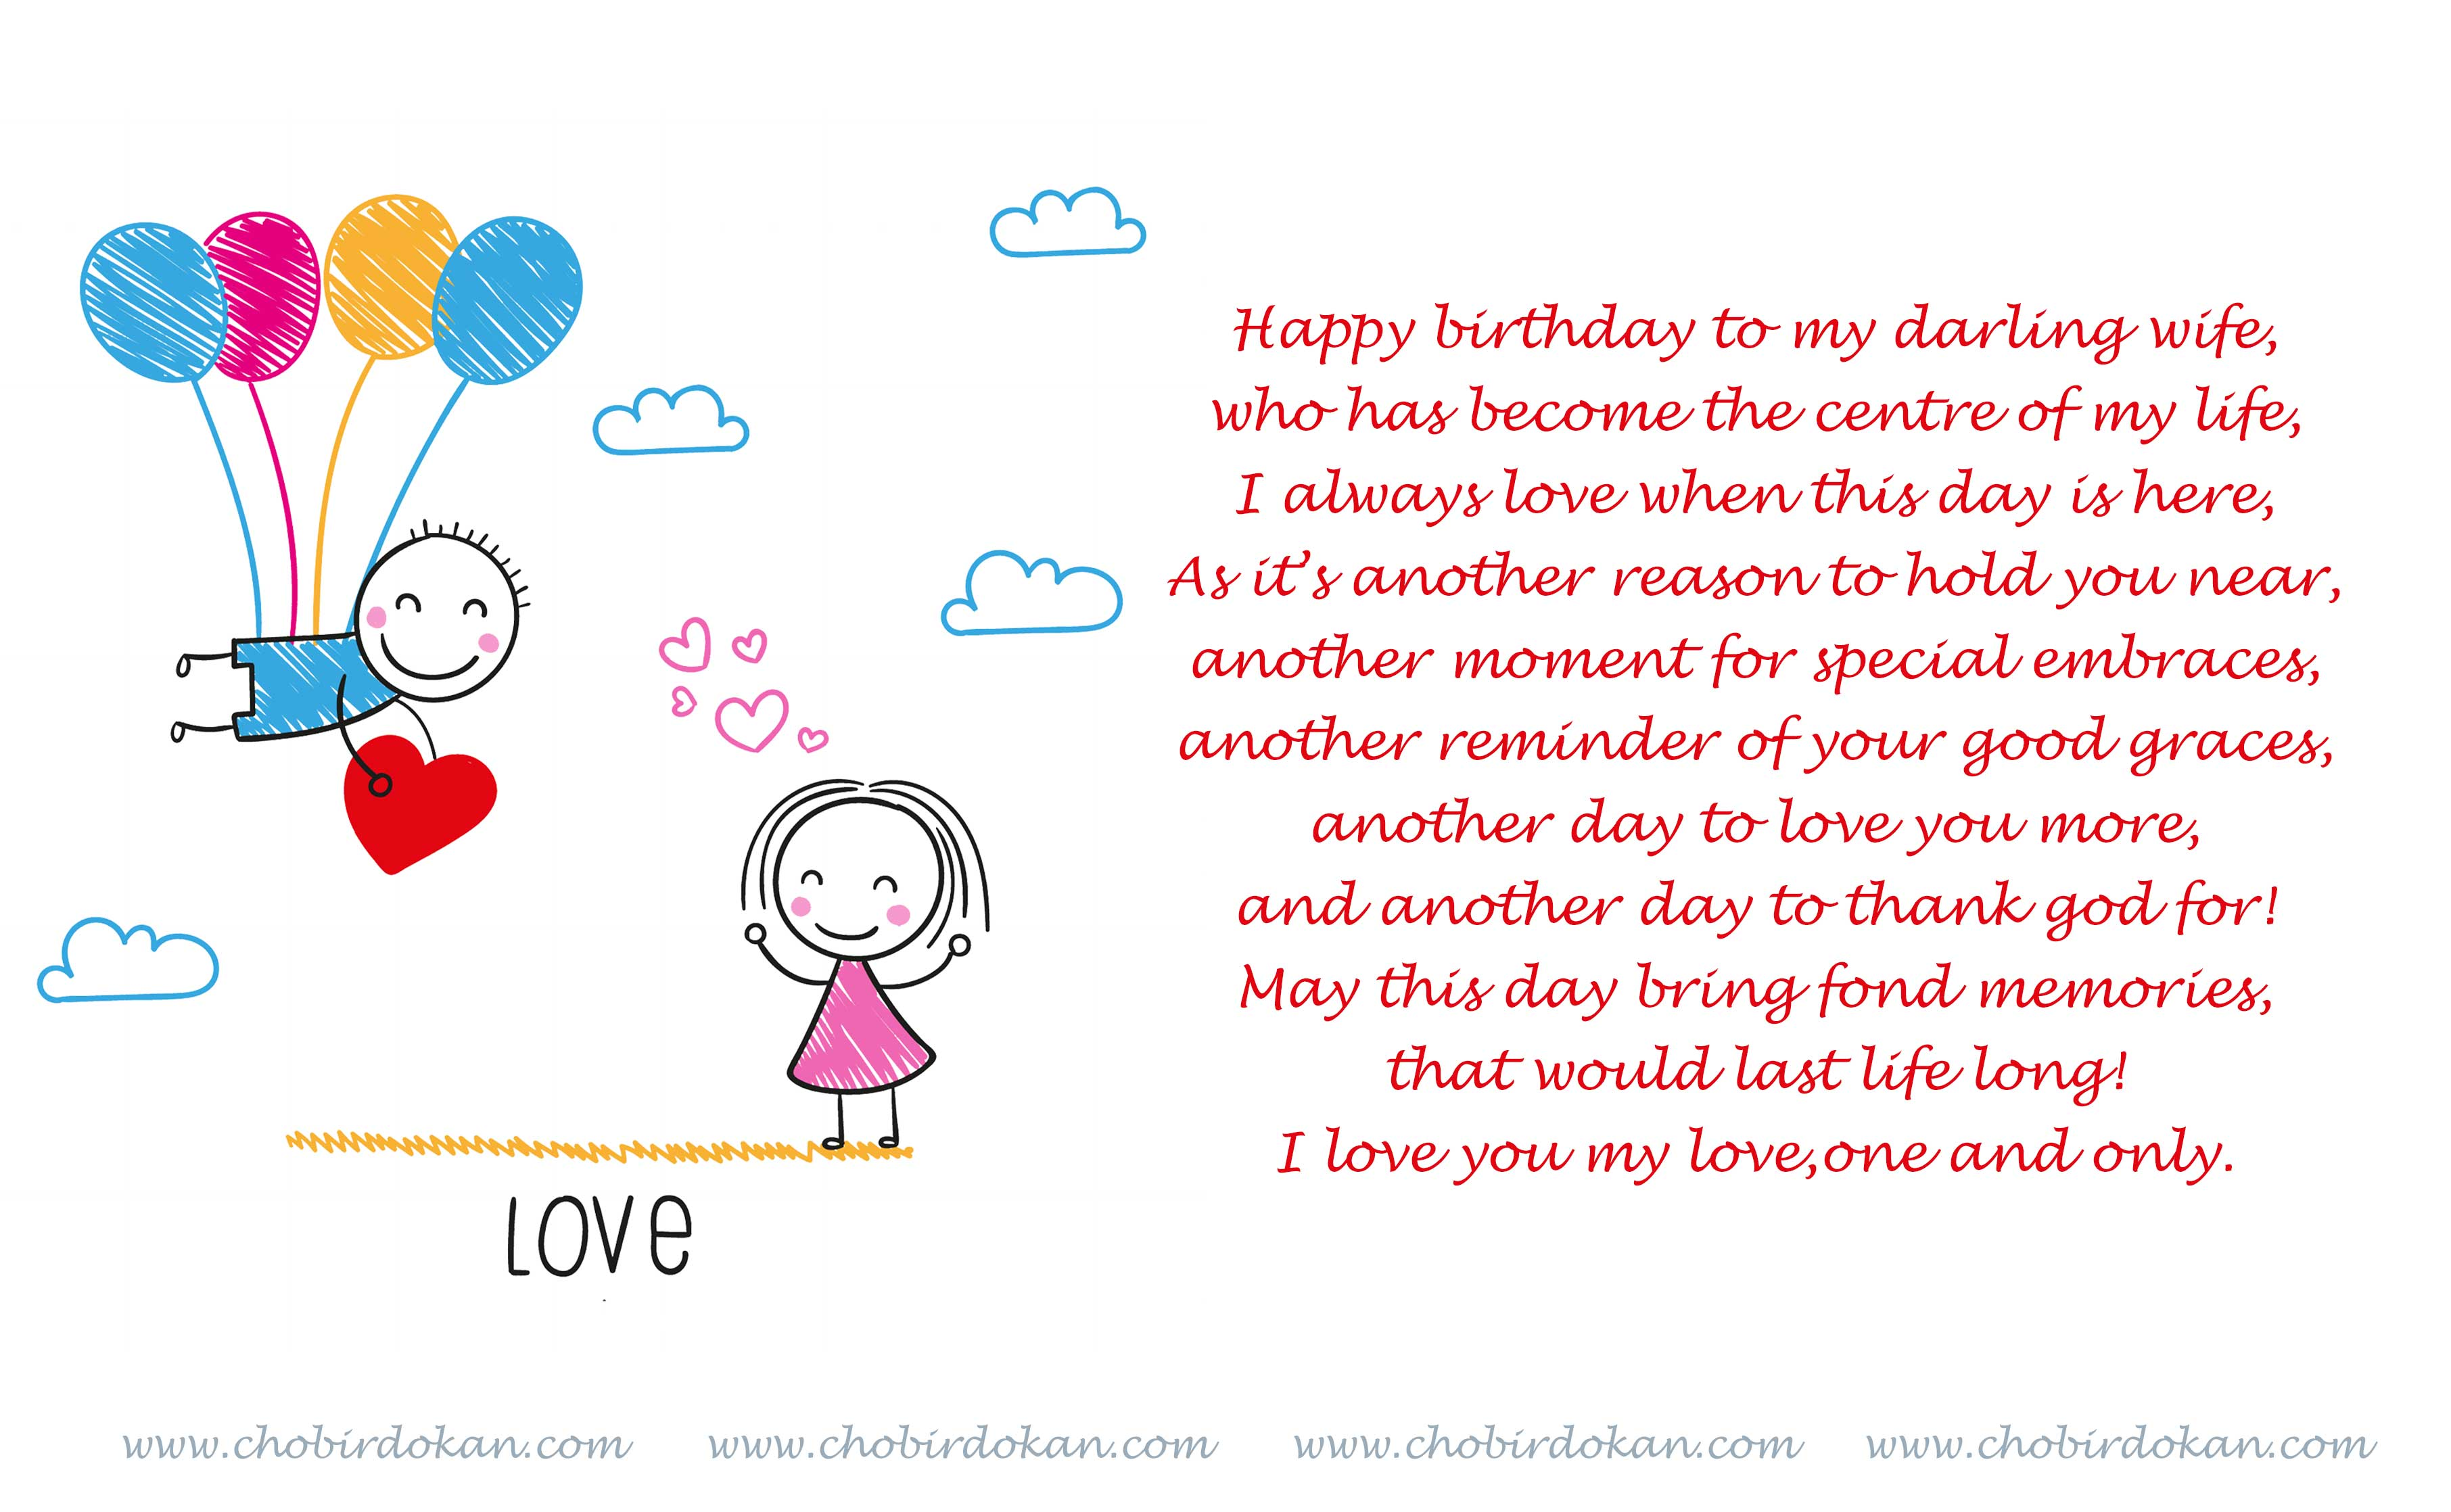 Happy birthday poems for her for girlfriend or wife poems chobirdokan